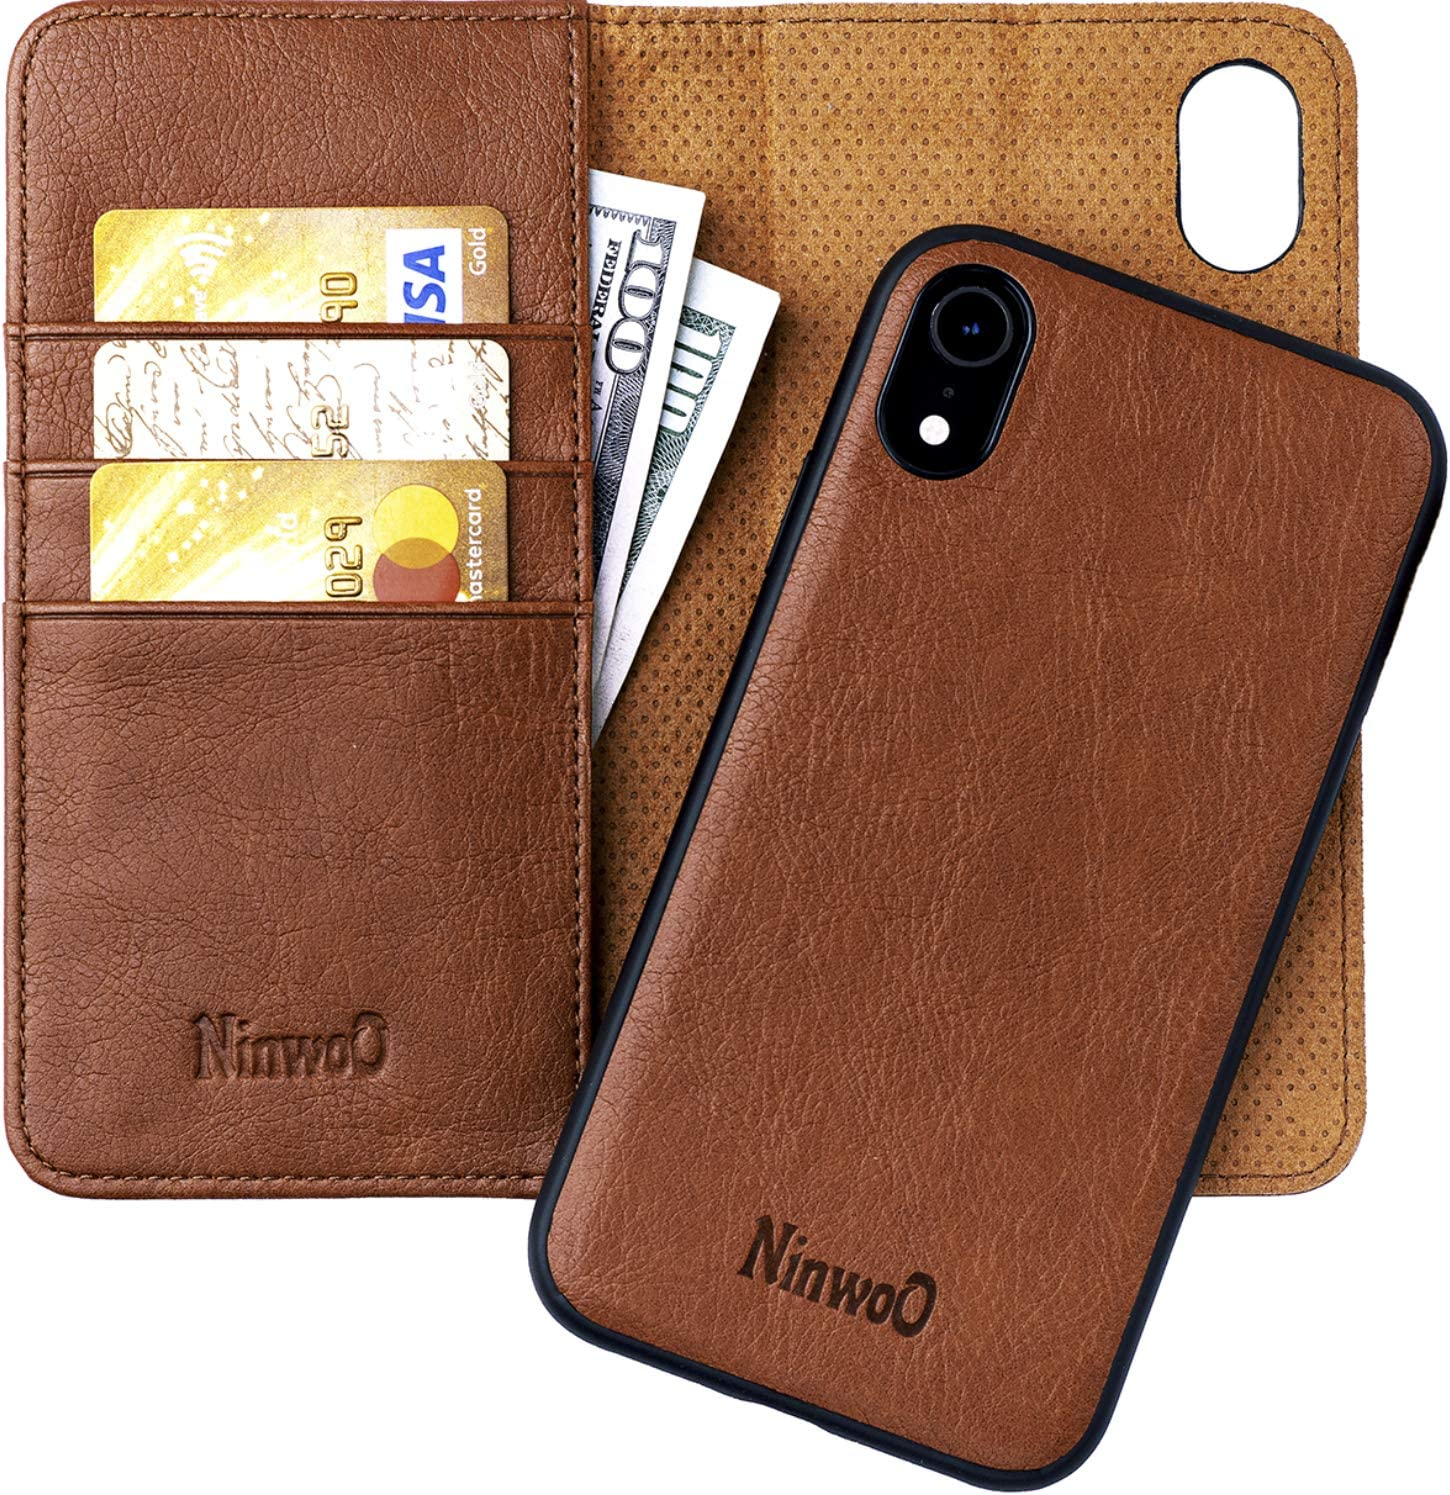 NINWOO iPhone XR Leather Wallet Case - Detachable Magnetic Shock-Proof TPU Mobile Cell Phone Case - Best 2-in-1 Folio Flip Cover Credit and ID Cards Slots for Apple iPhone XR 6.1 Inch Brown